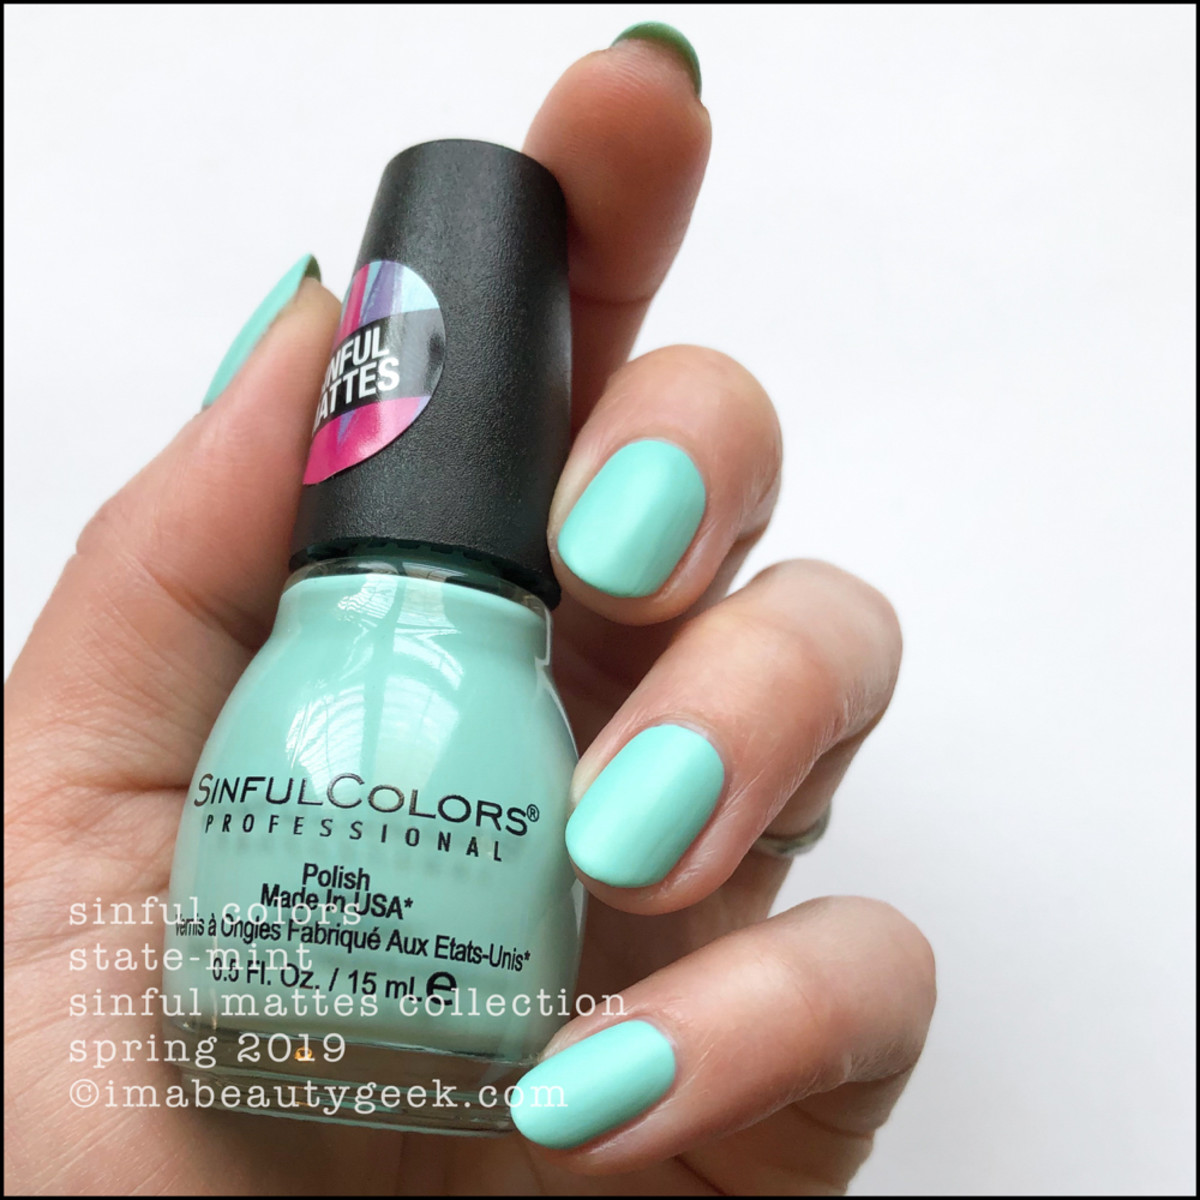 Sinful Colors State-mint _ Sinful Colors Swatches Matte Collection 2019